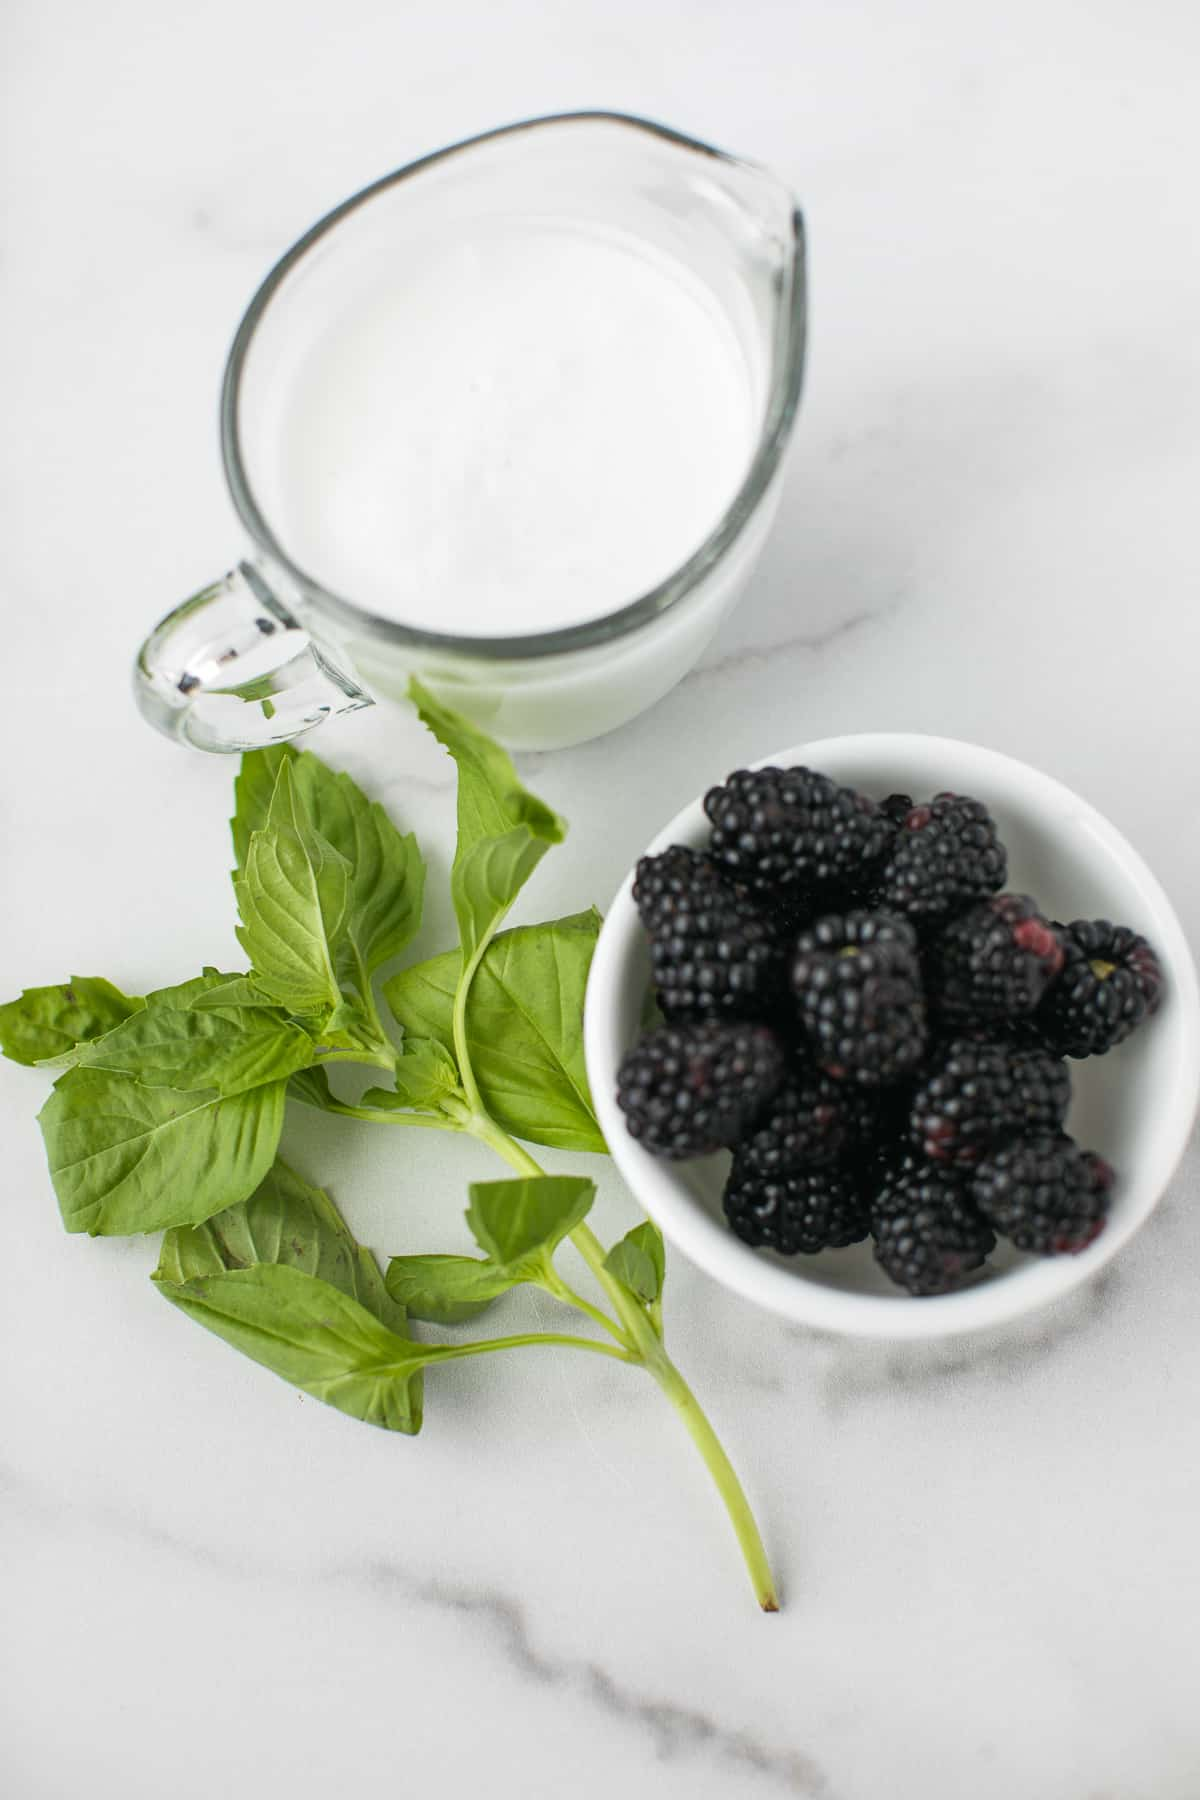 coconut milk, basil, and a bowl of blackberries